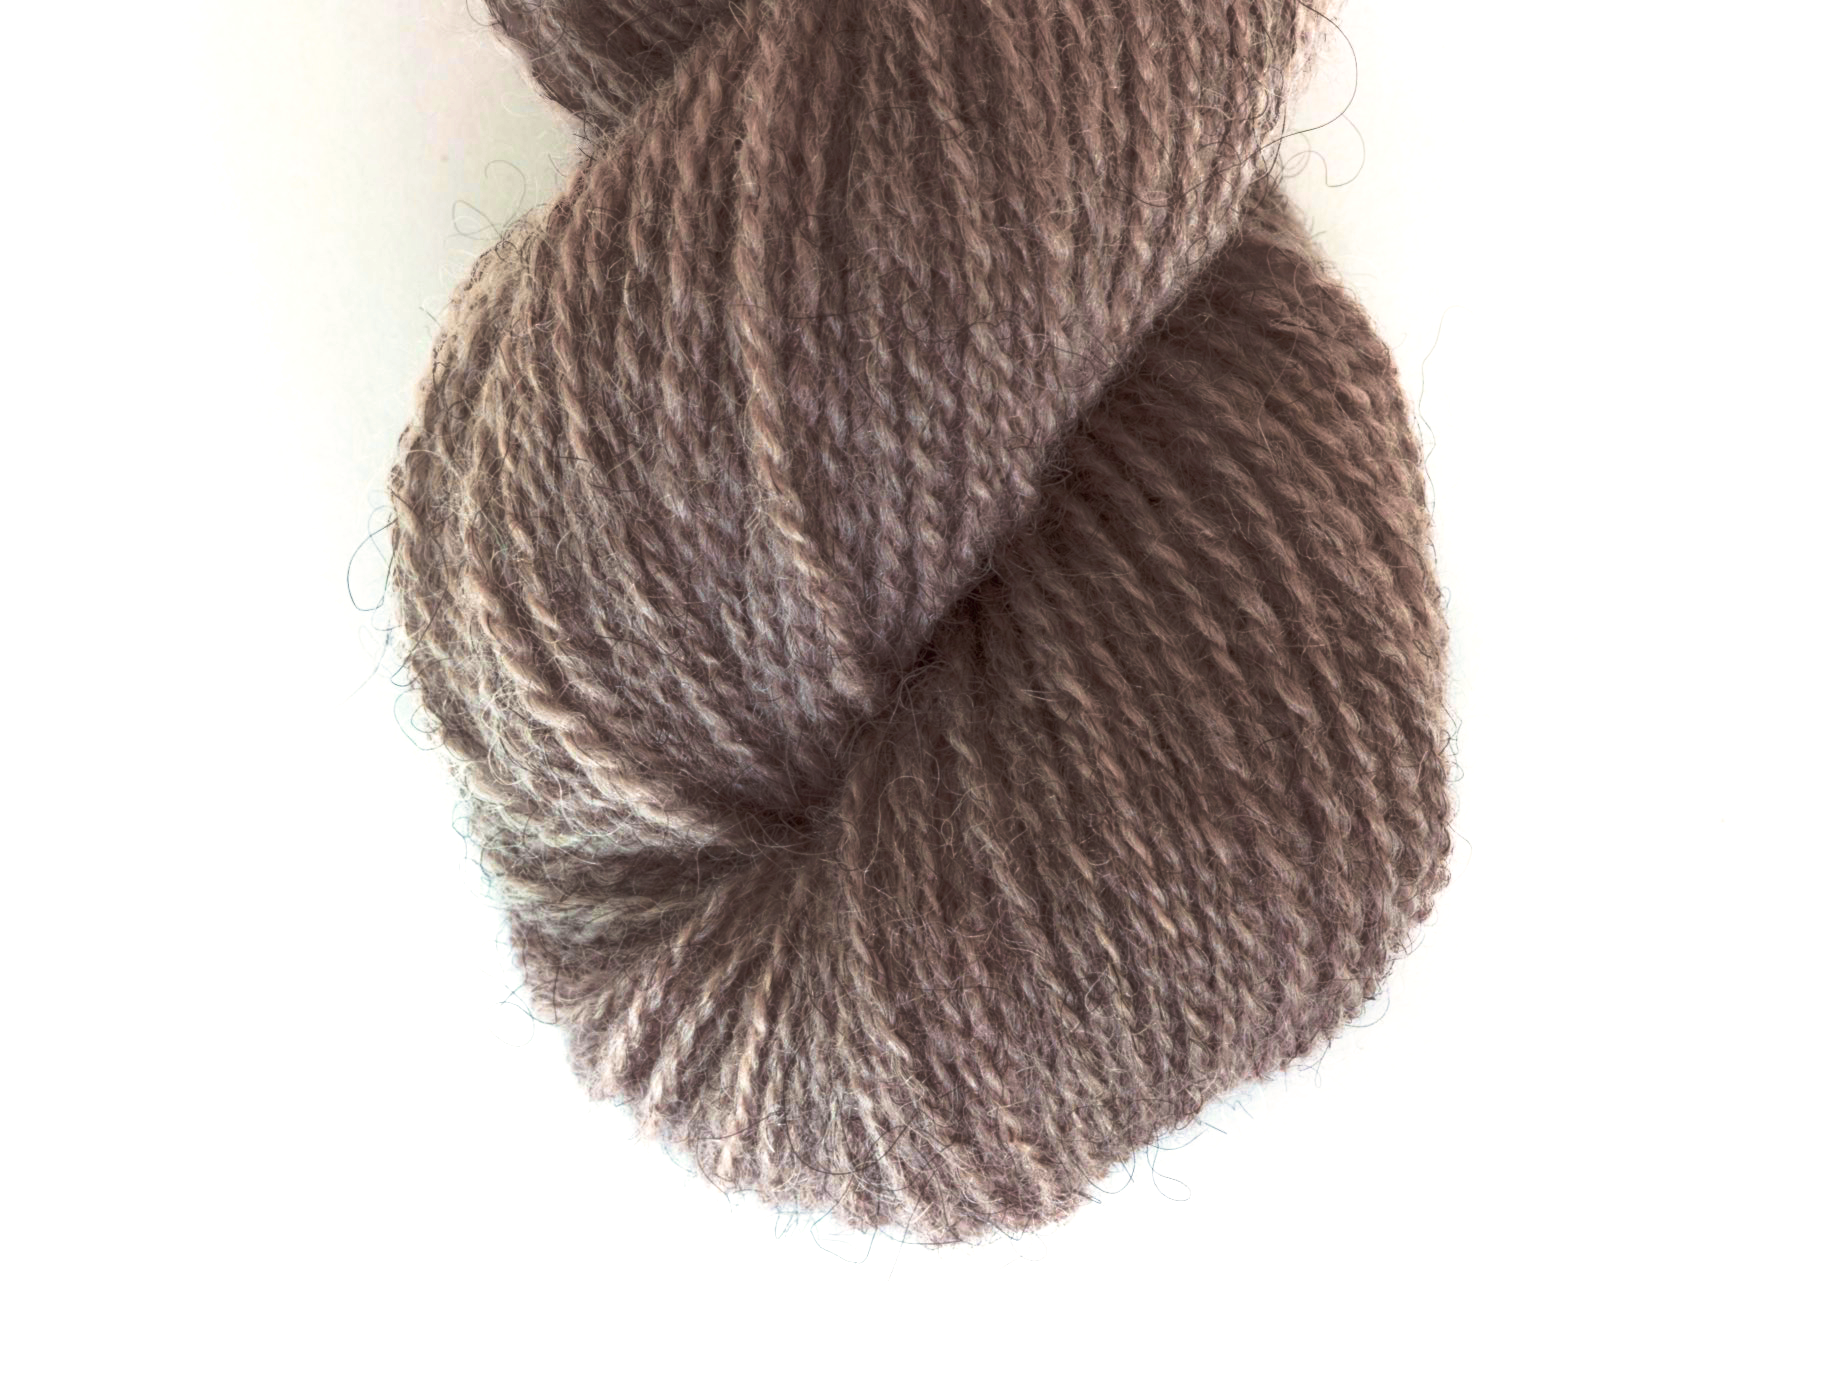 Bohus Stickning garn yarn BS 115 brown lambswool